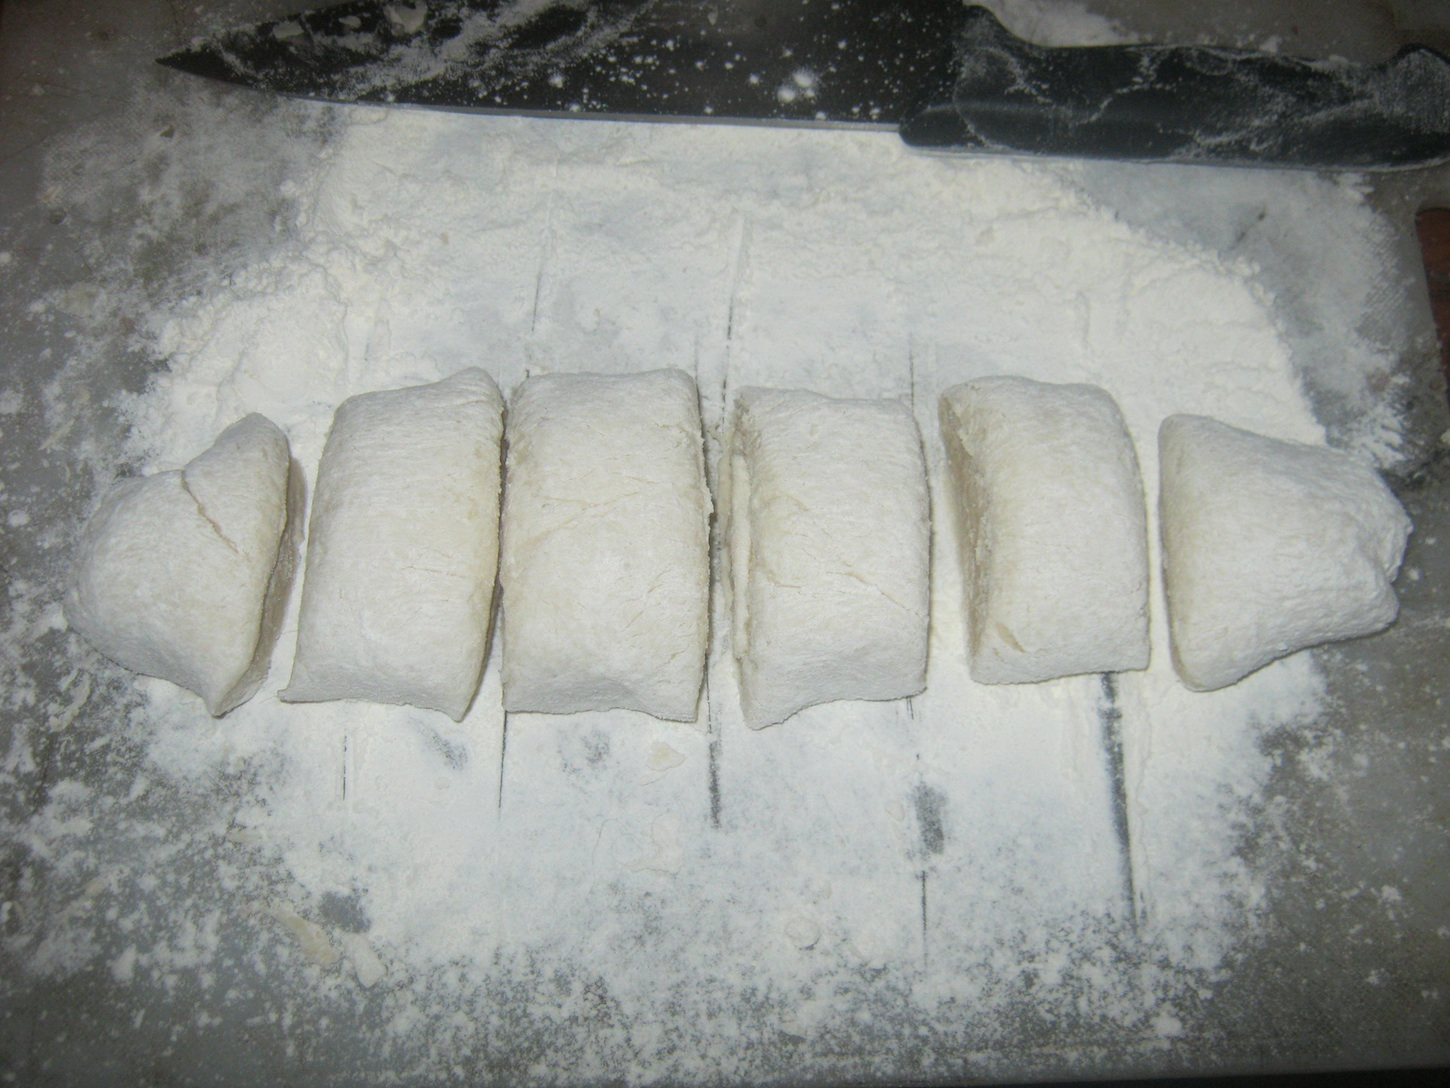 Dough divided into 6 pieces on a large board